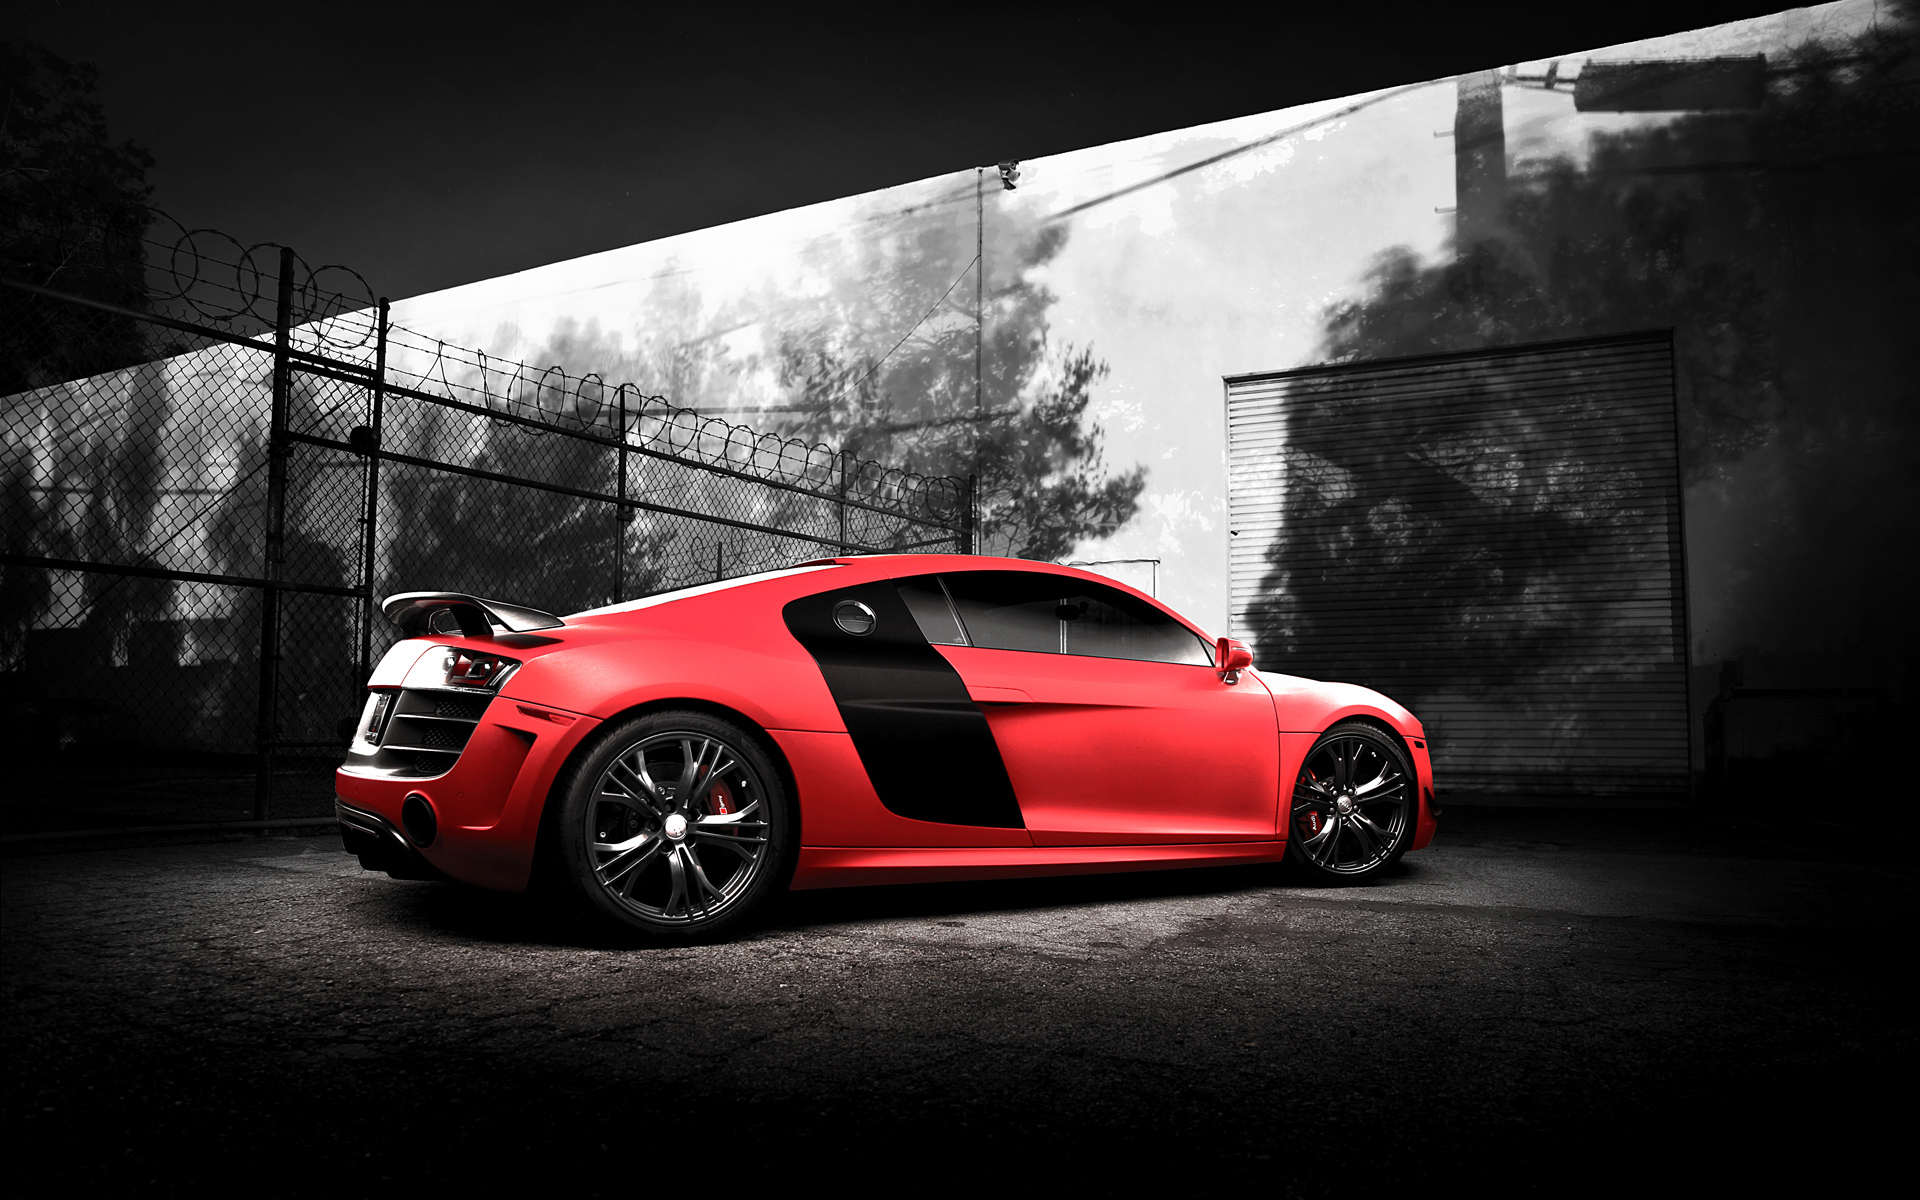 audi r8 gt 5 wallpaper hd car wallpapers